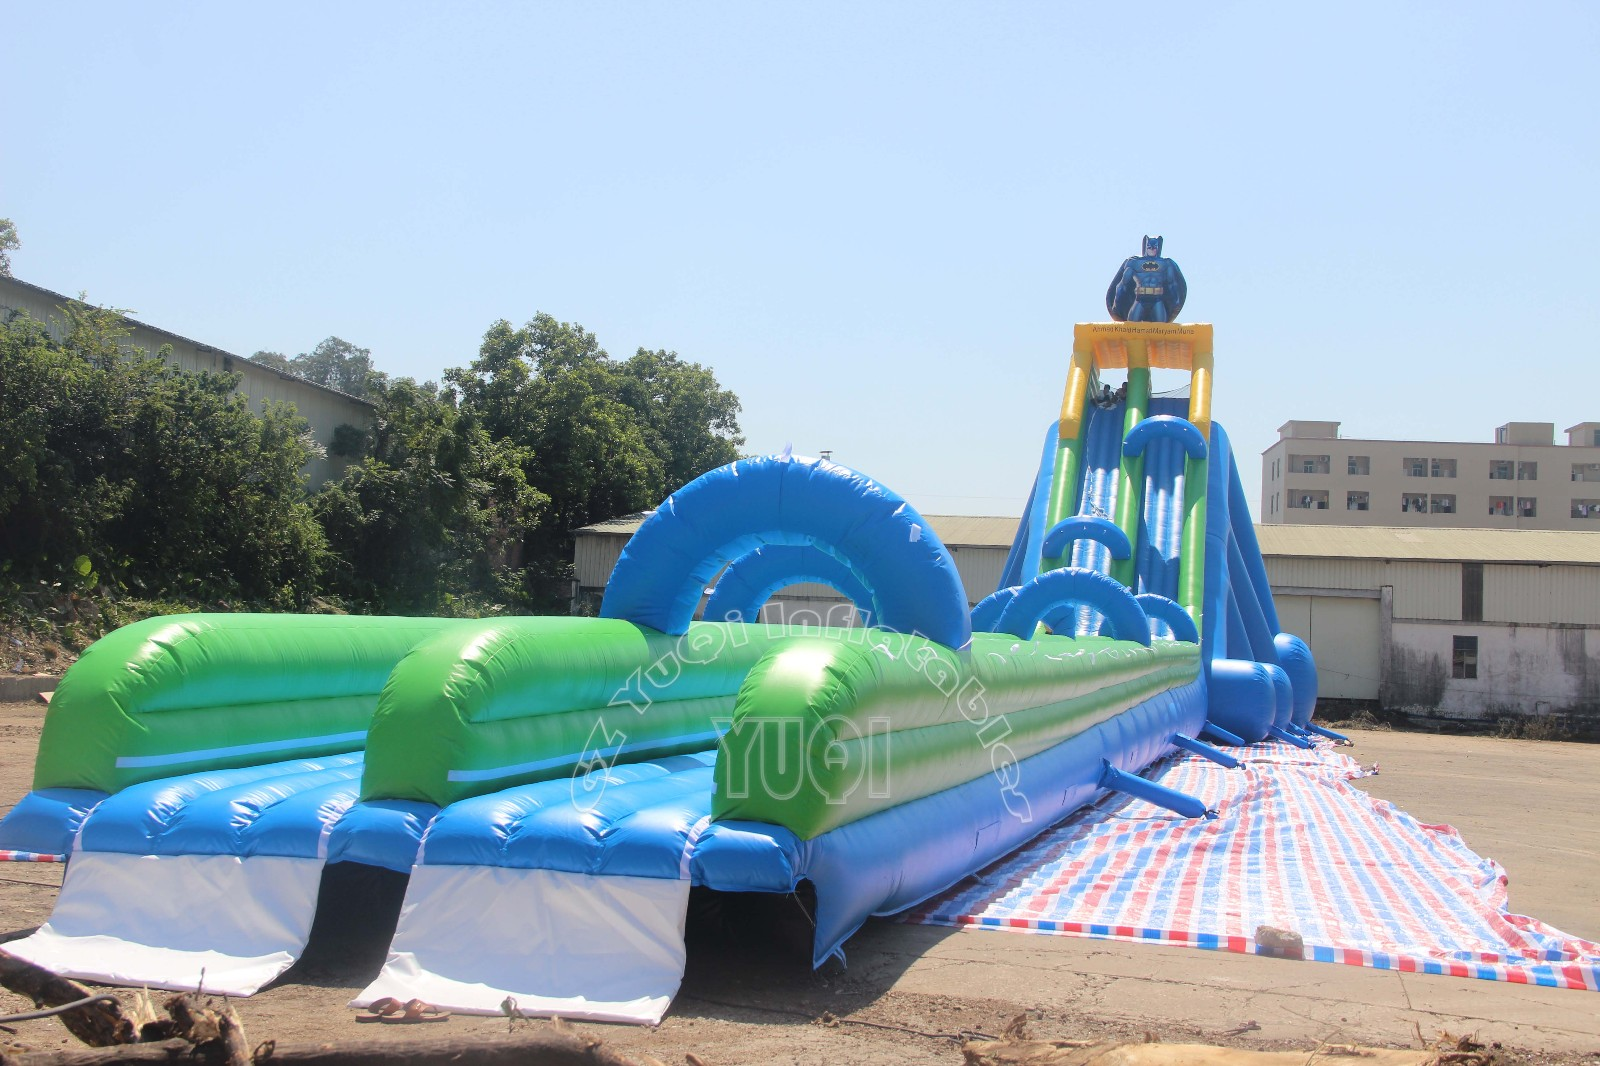 YUQI-Info Center | Giant Inflatable Slide Testing